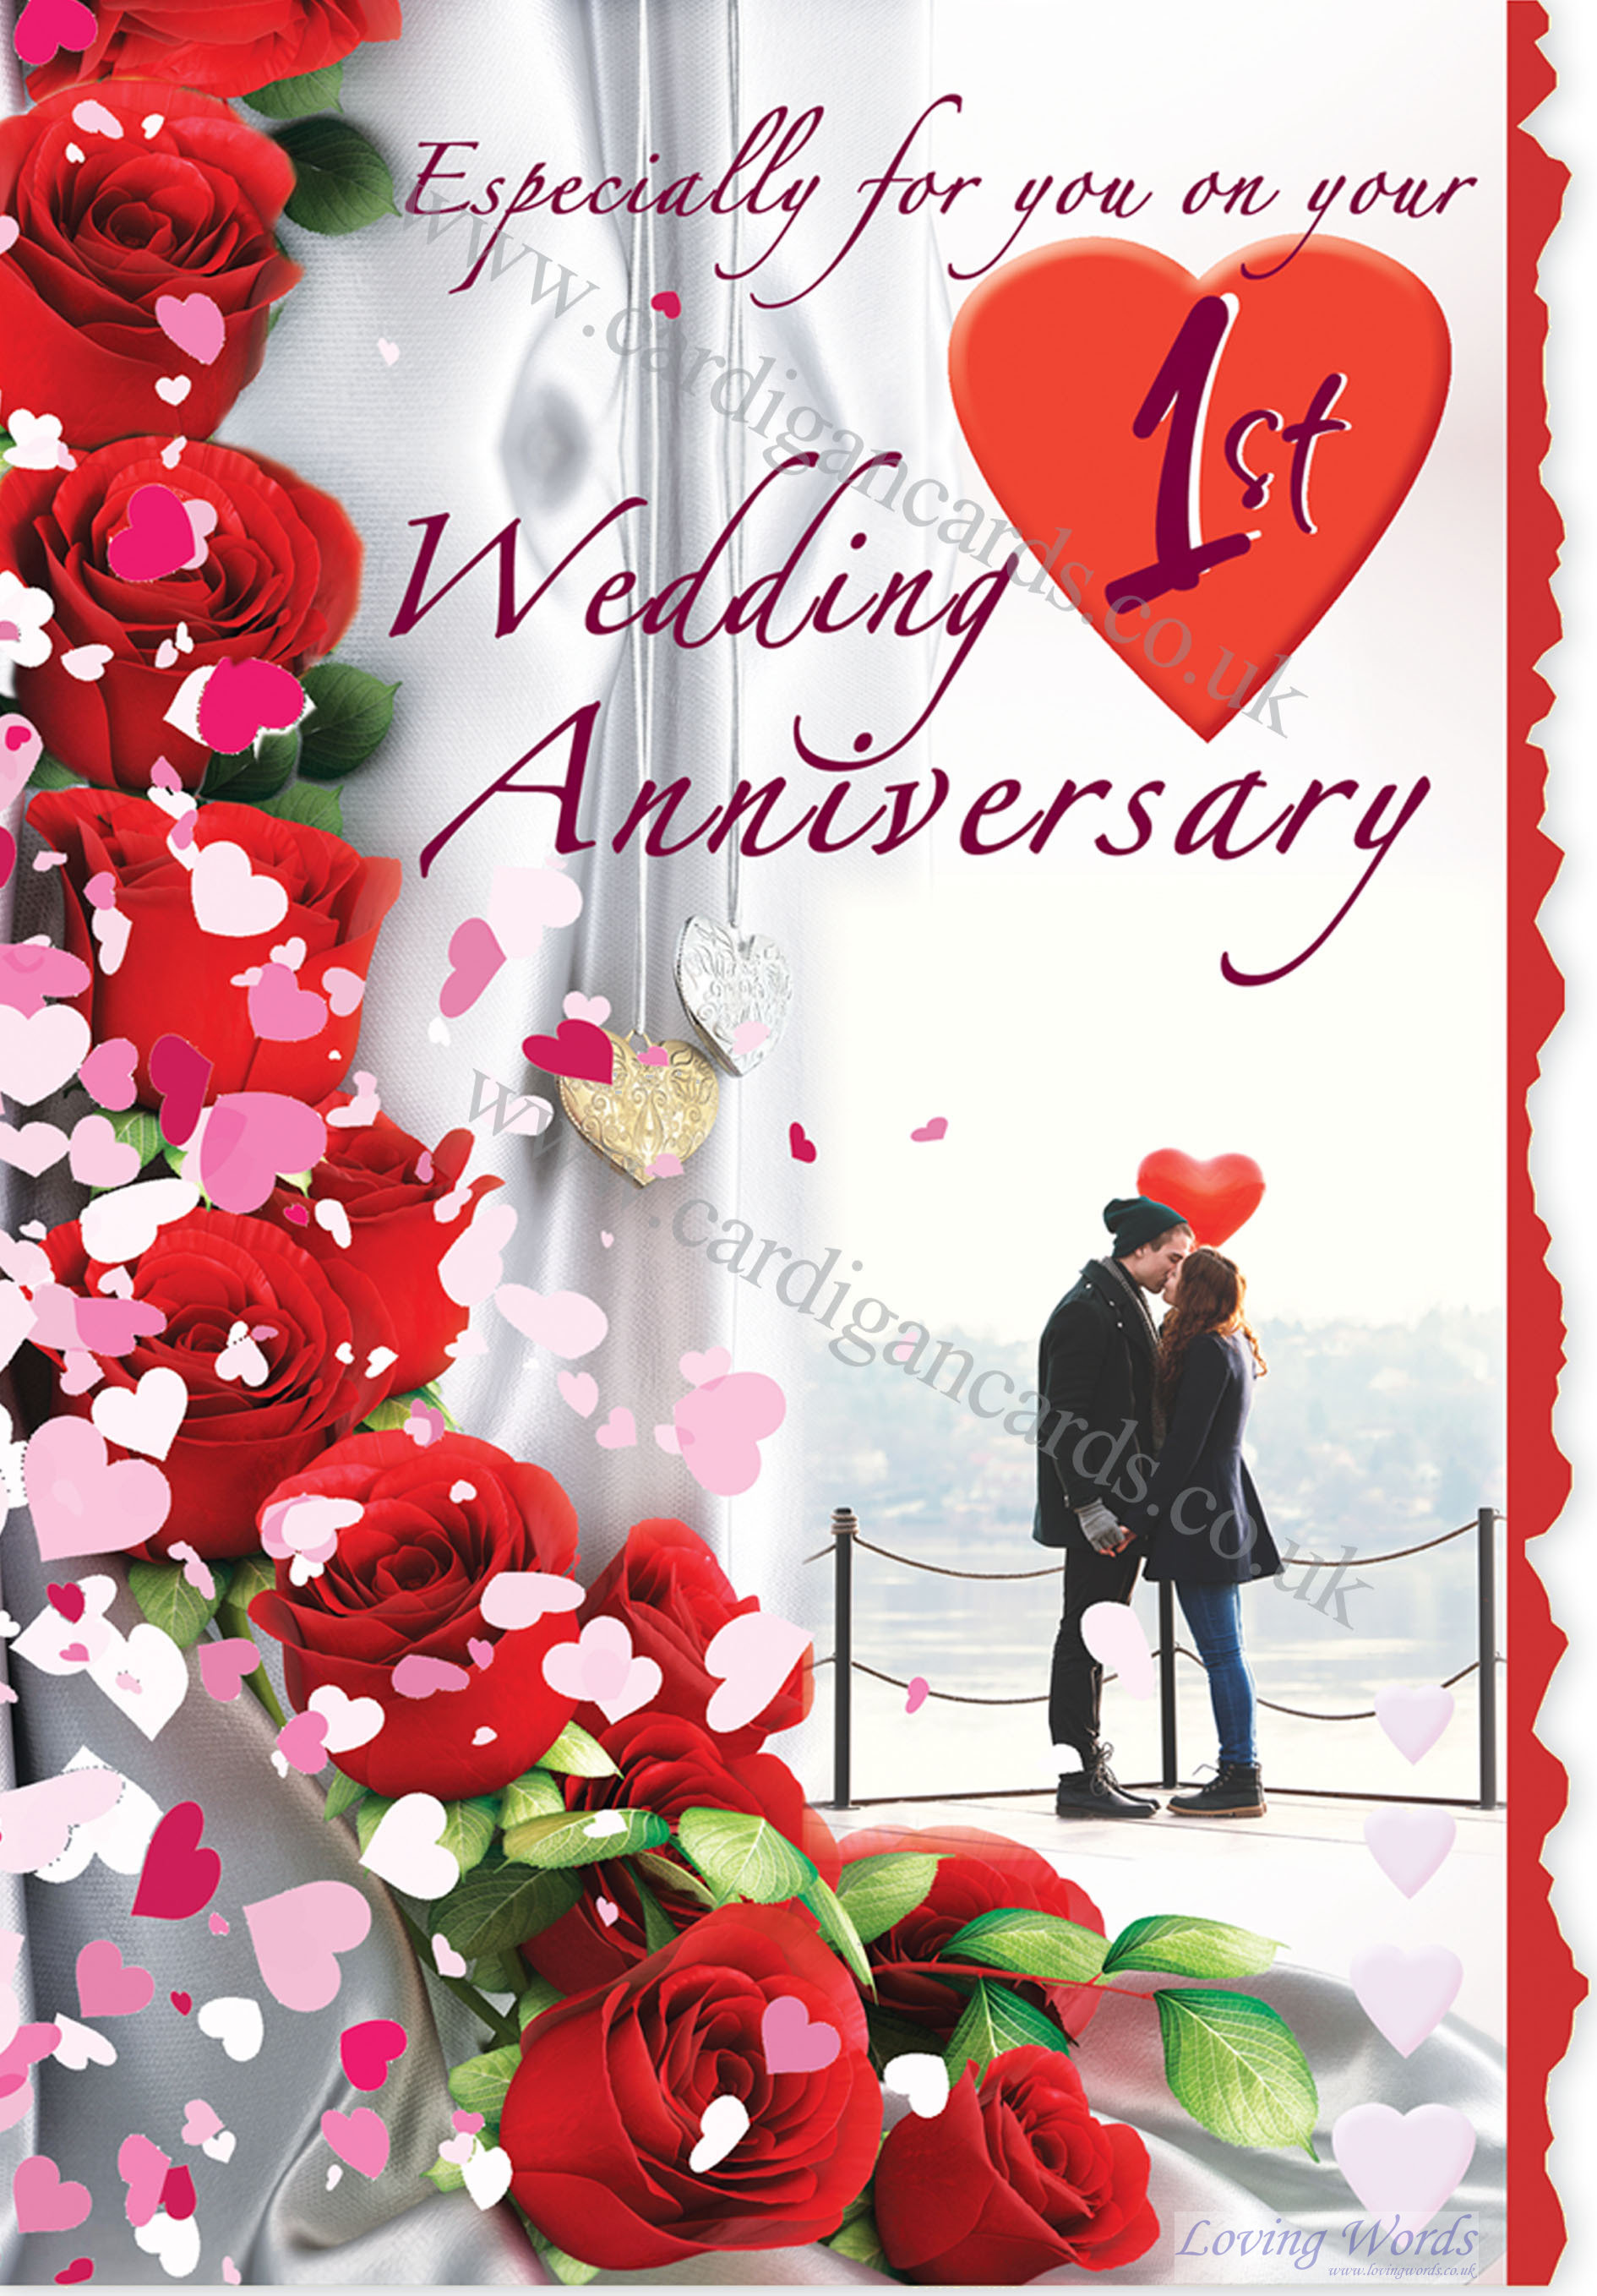 1st wedding anniversary greeting cards by loving words personalised greeting cards m4hsunfo